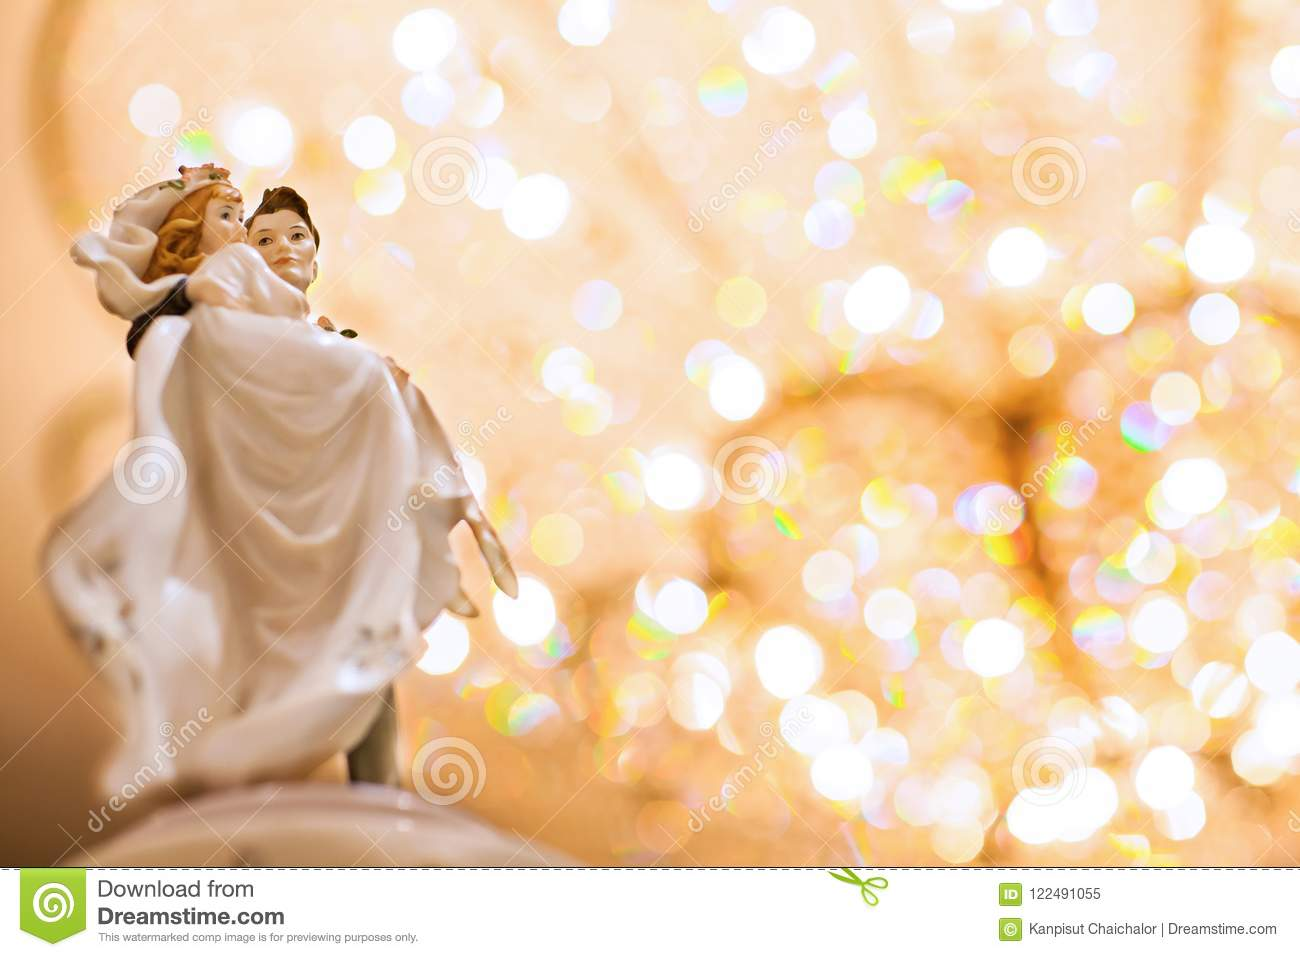 Figurines Of The Bride And Groom On A Wedding Cake. Stock Image ...